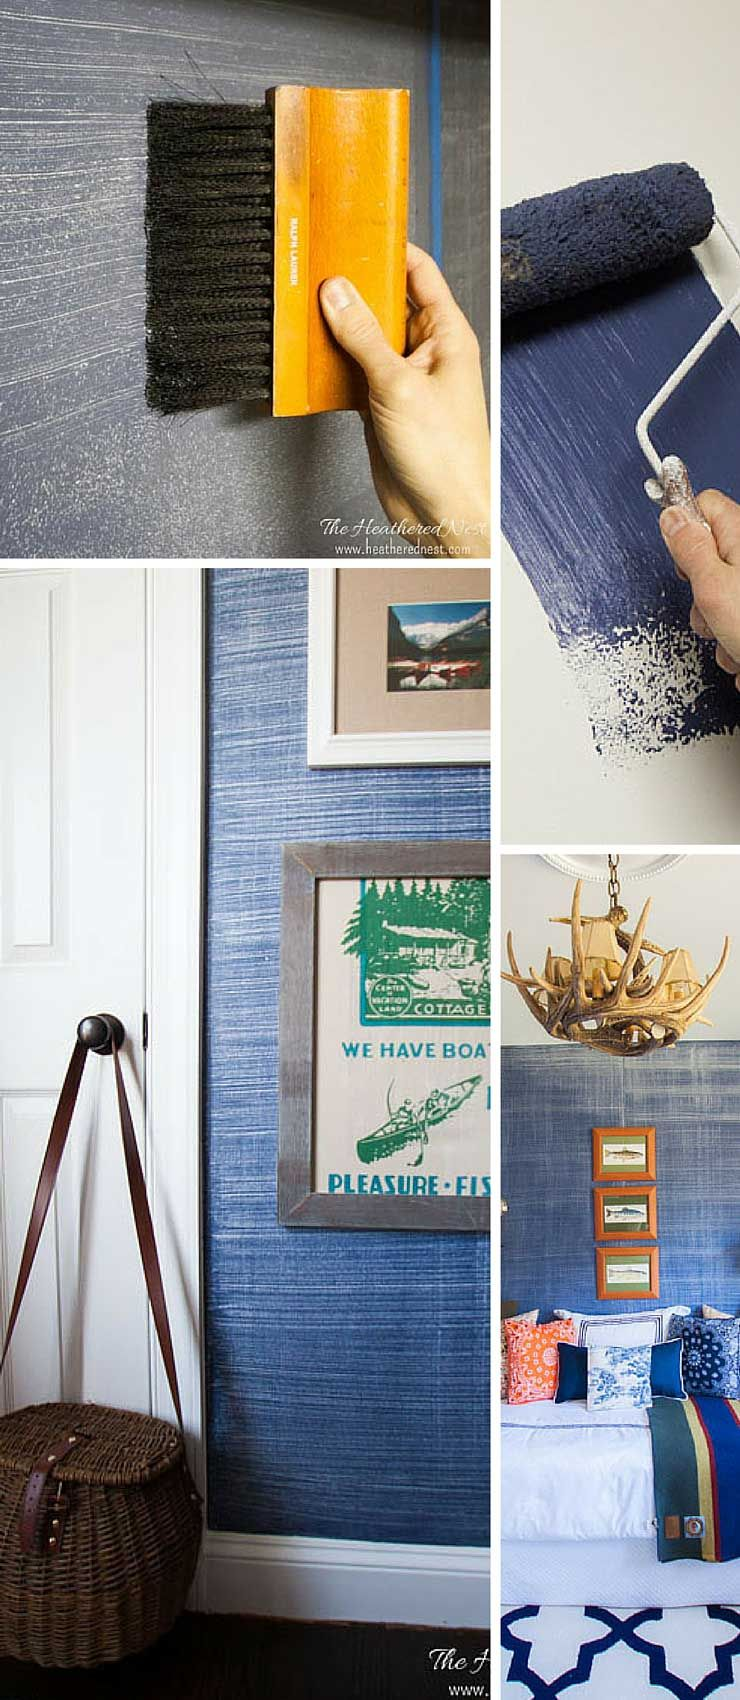 How to's : Denim faux finish for walls! GREAT paint idea to add texture and interest for an upscale look on a budget! Looks like grasscloth or real denim jeans!! from www.heatherednest.com